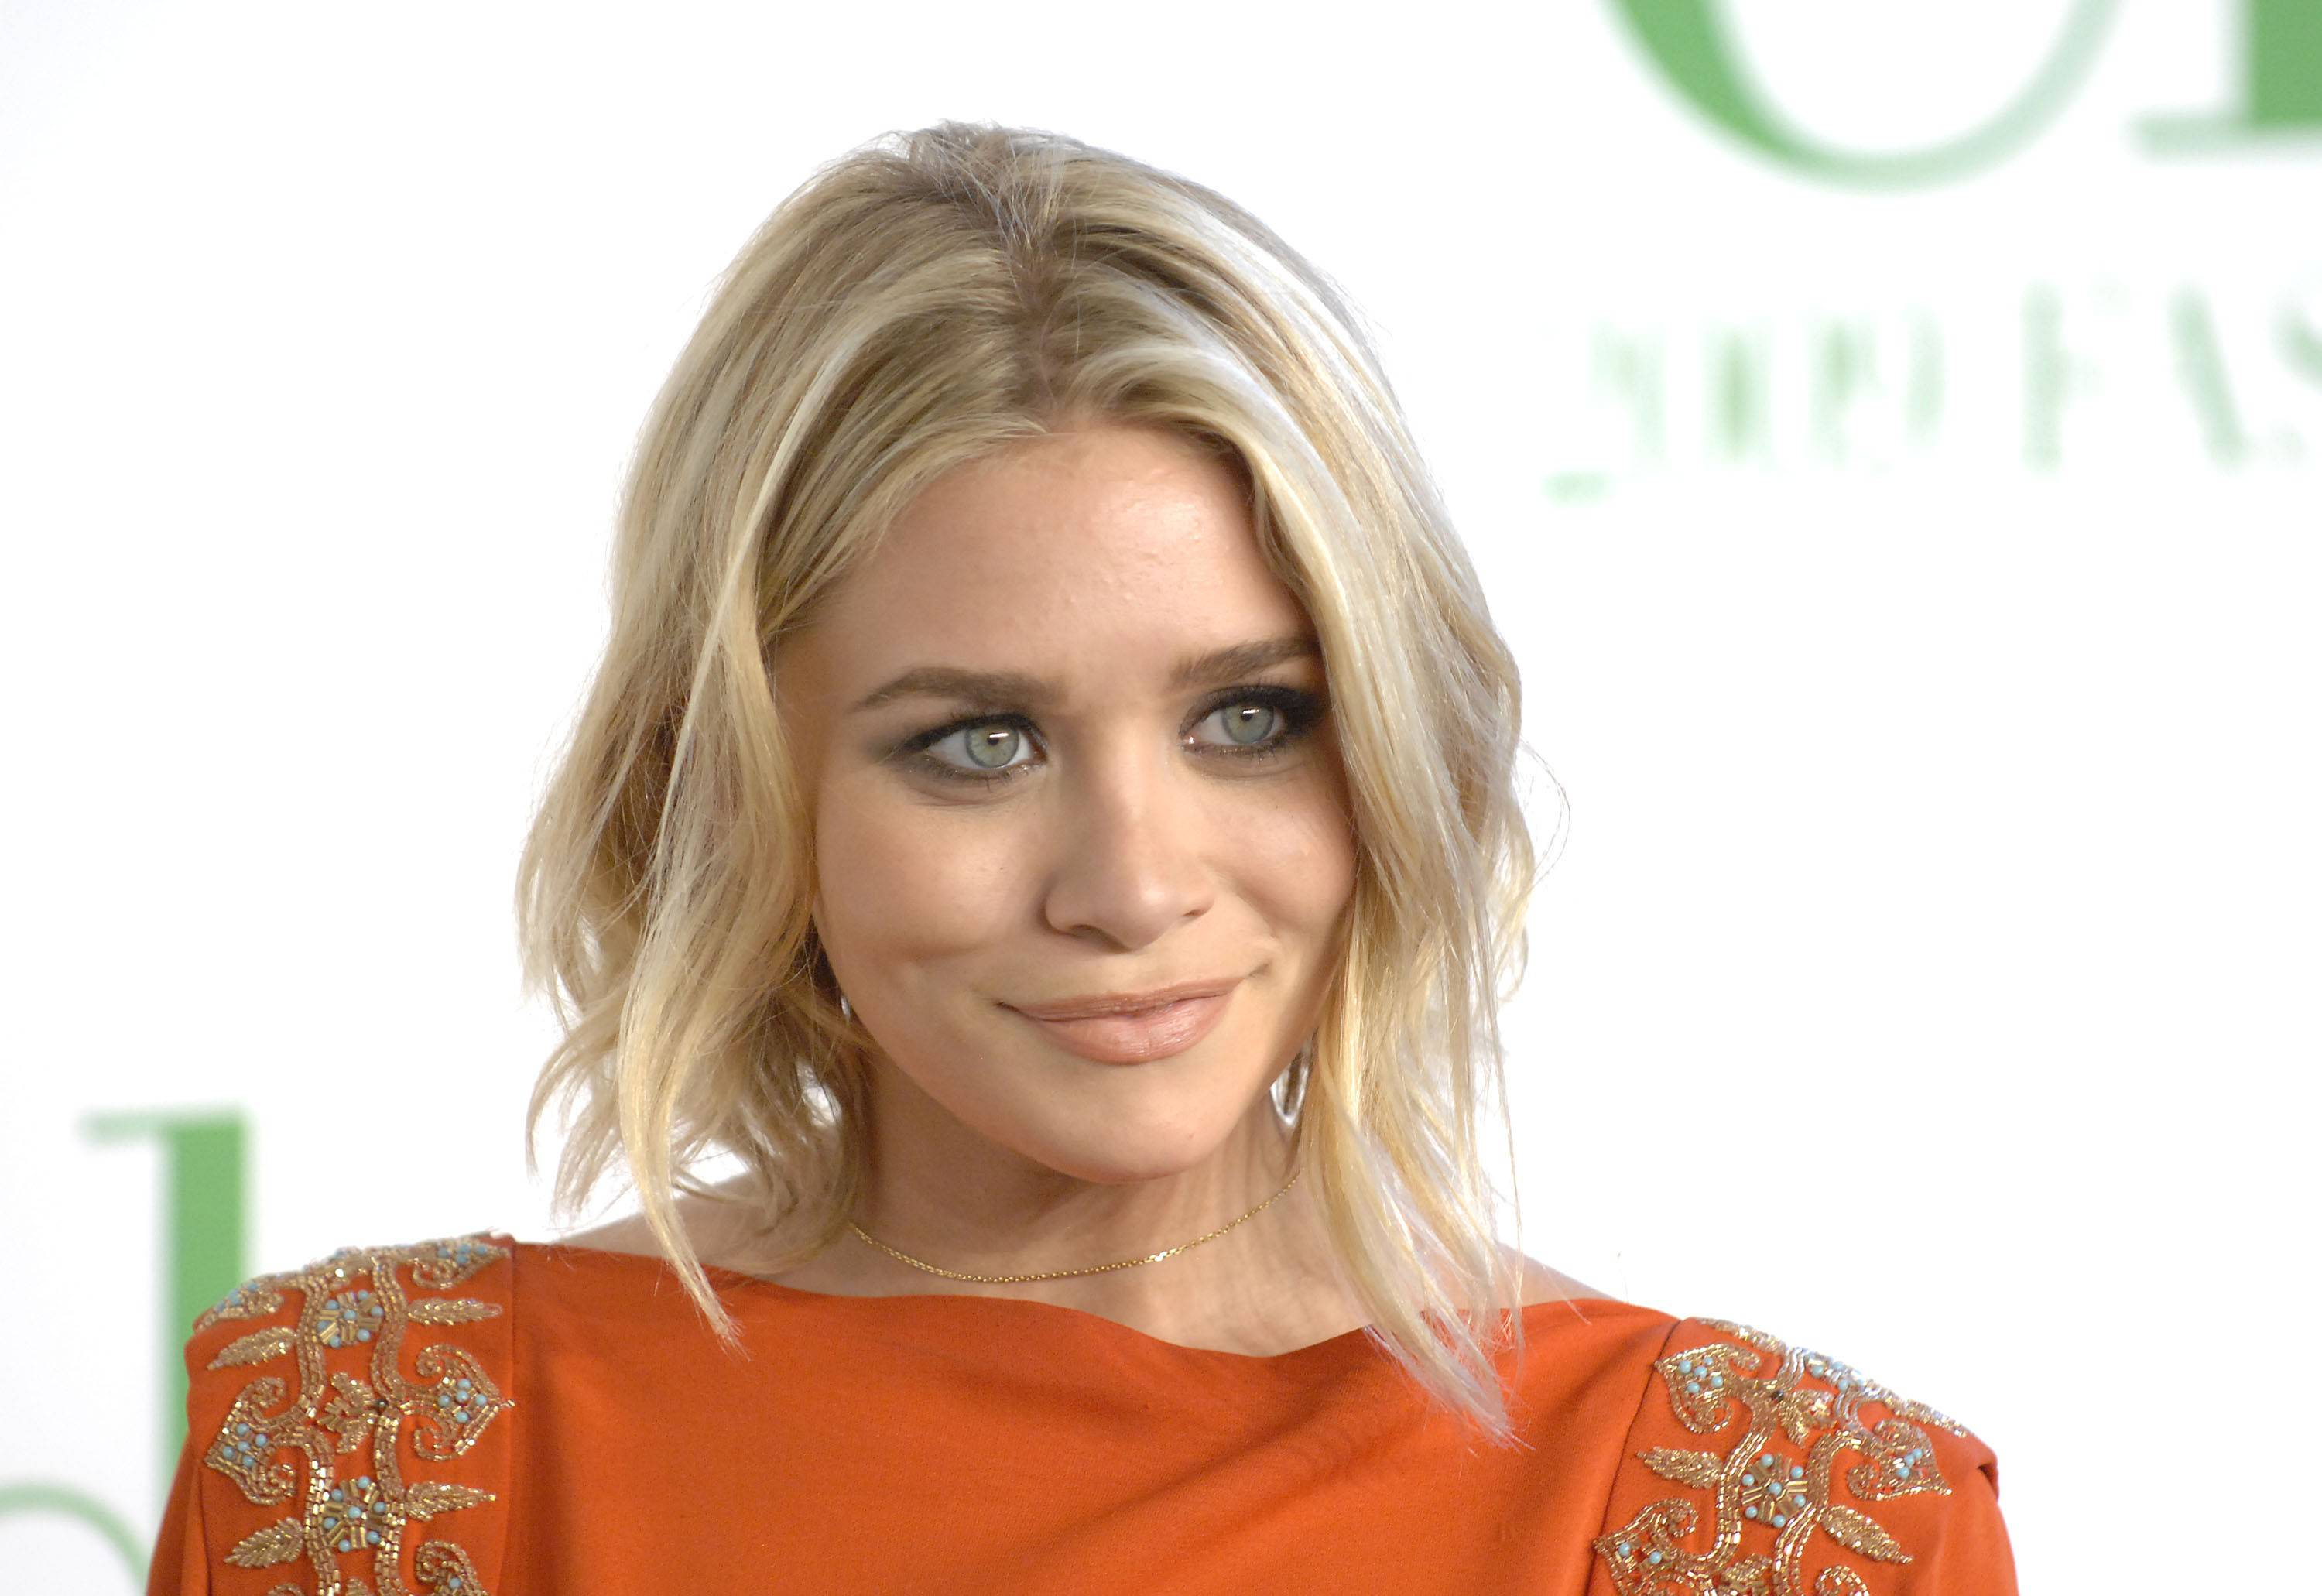 nude Ashley Olsen born June 13, 1986 (age 32) (75 photo) Video, Snapchat, butt